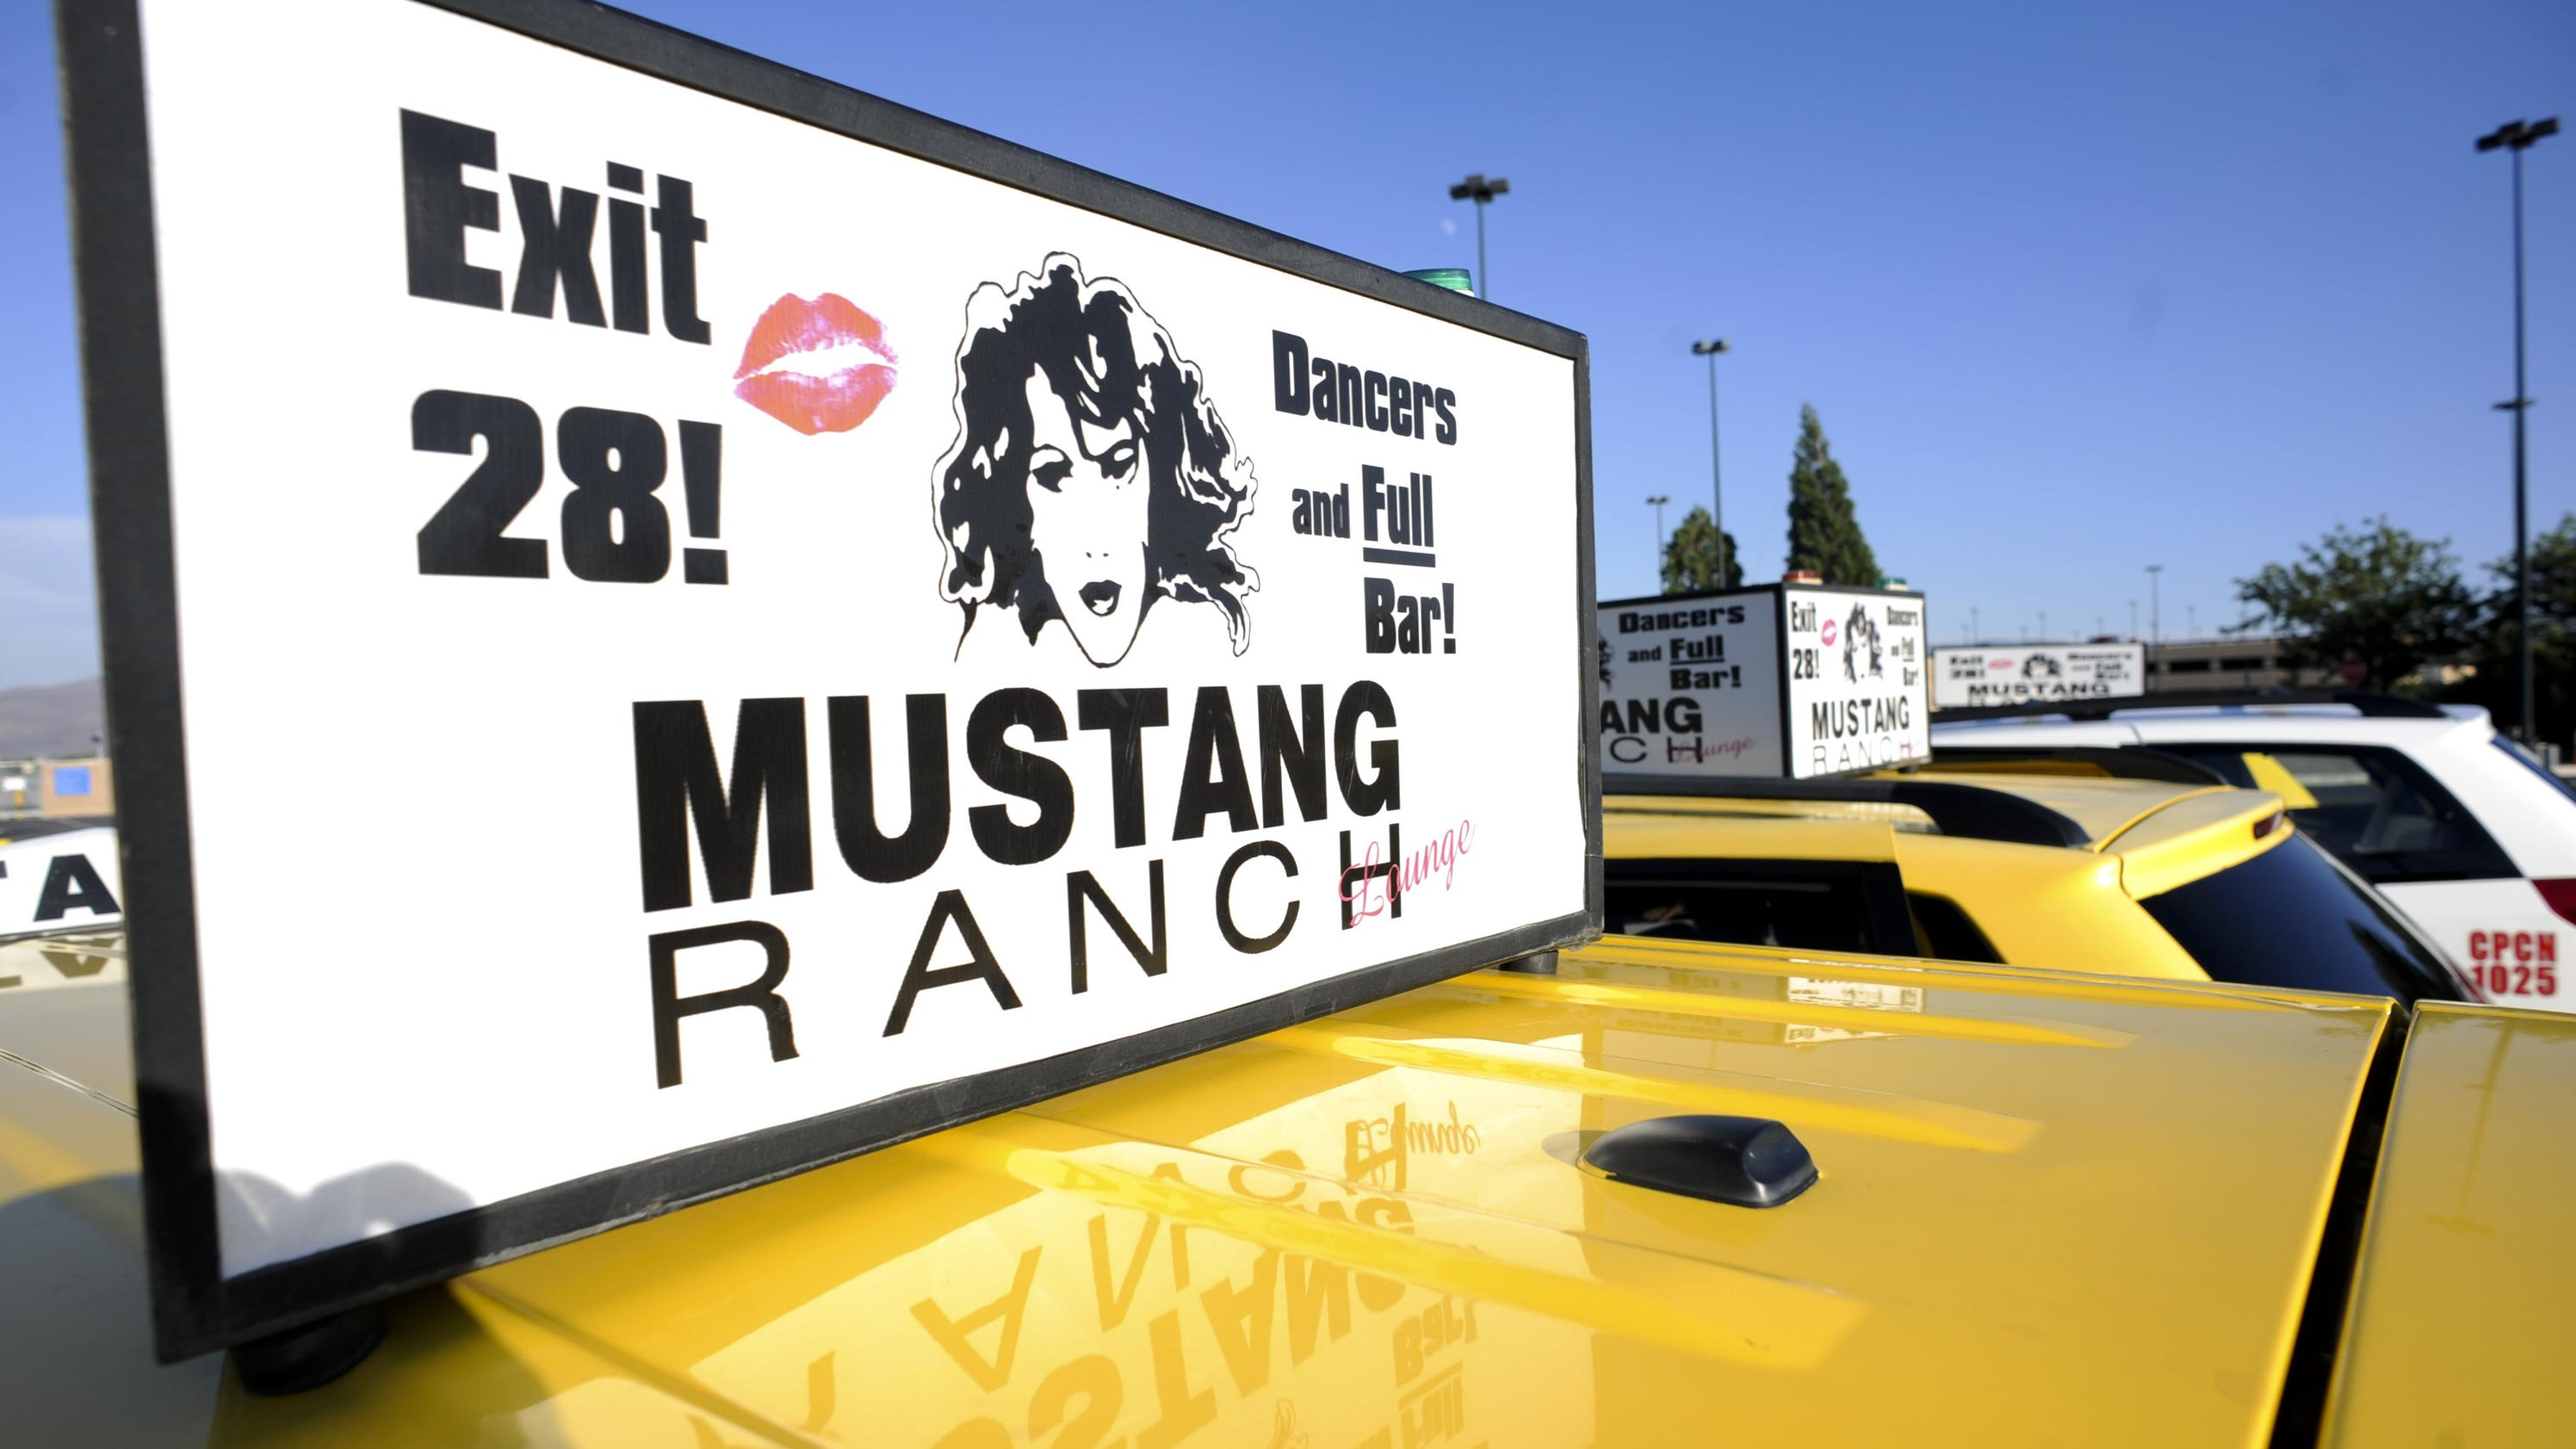 Mustang Ranch Wins Nevada Brothel Of Year Second Time